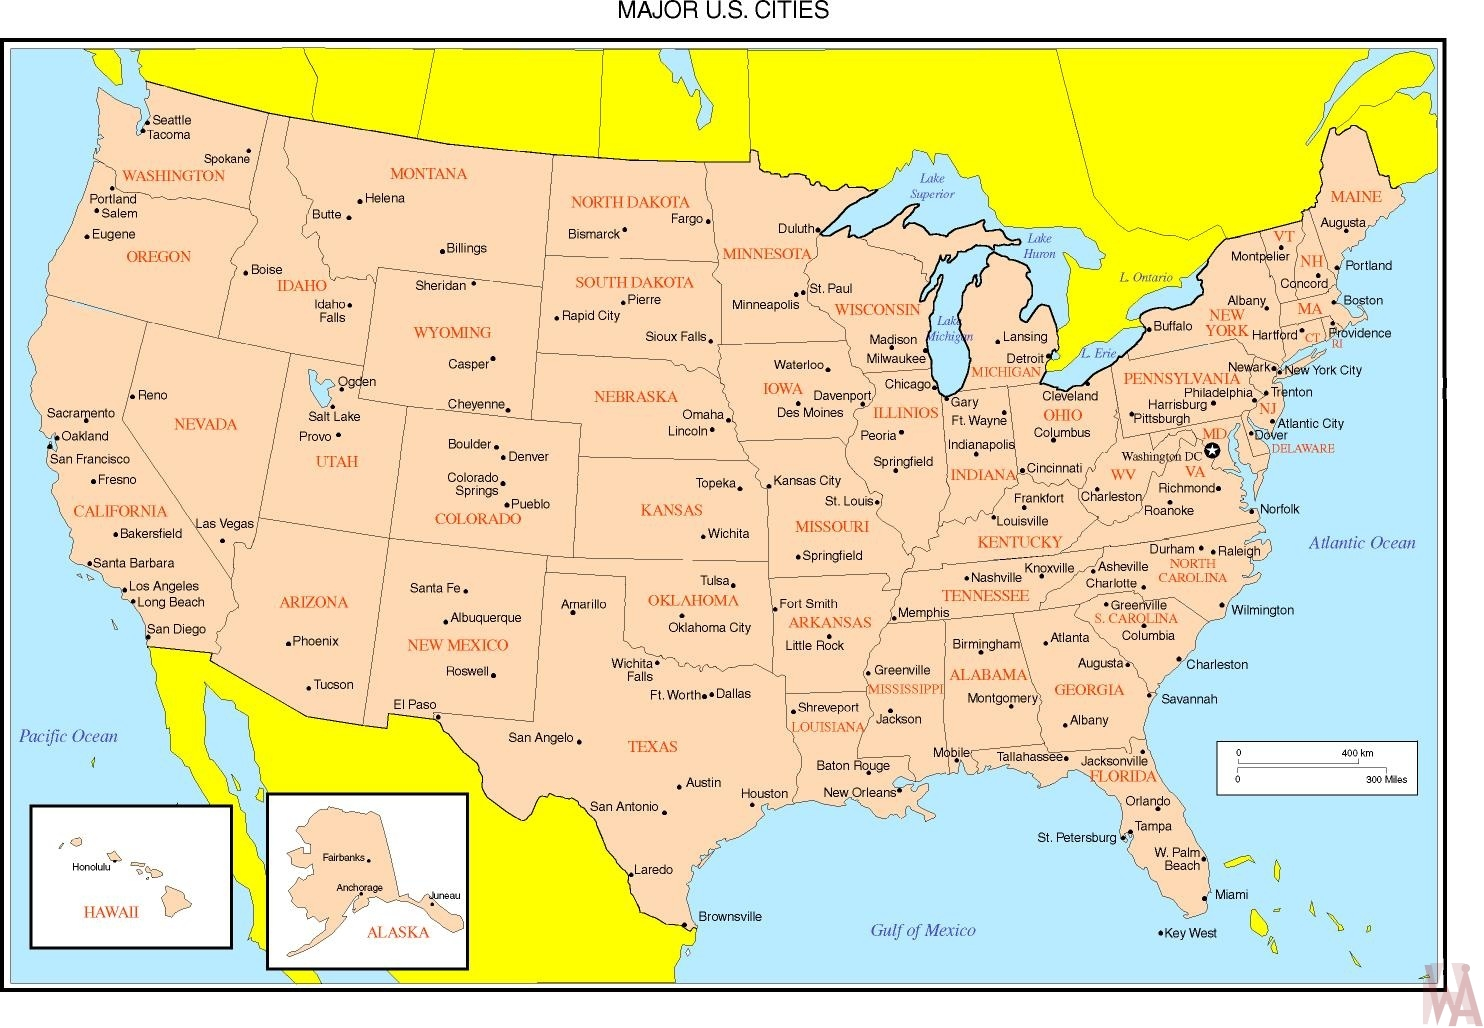 United States Political Map major cities | WhatsAnswer